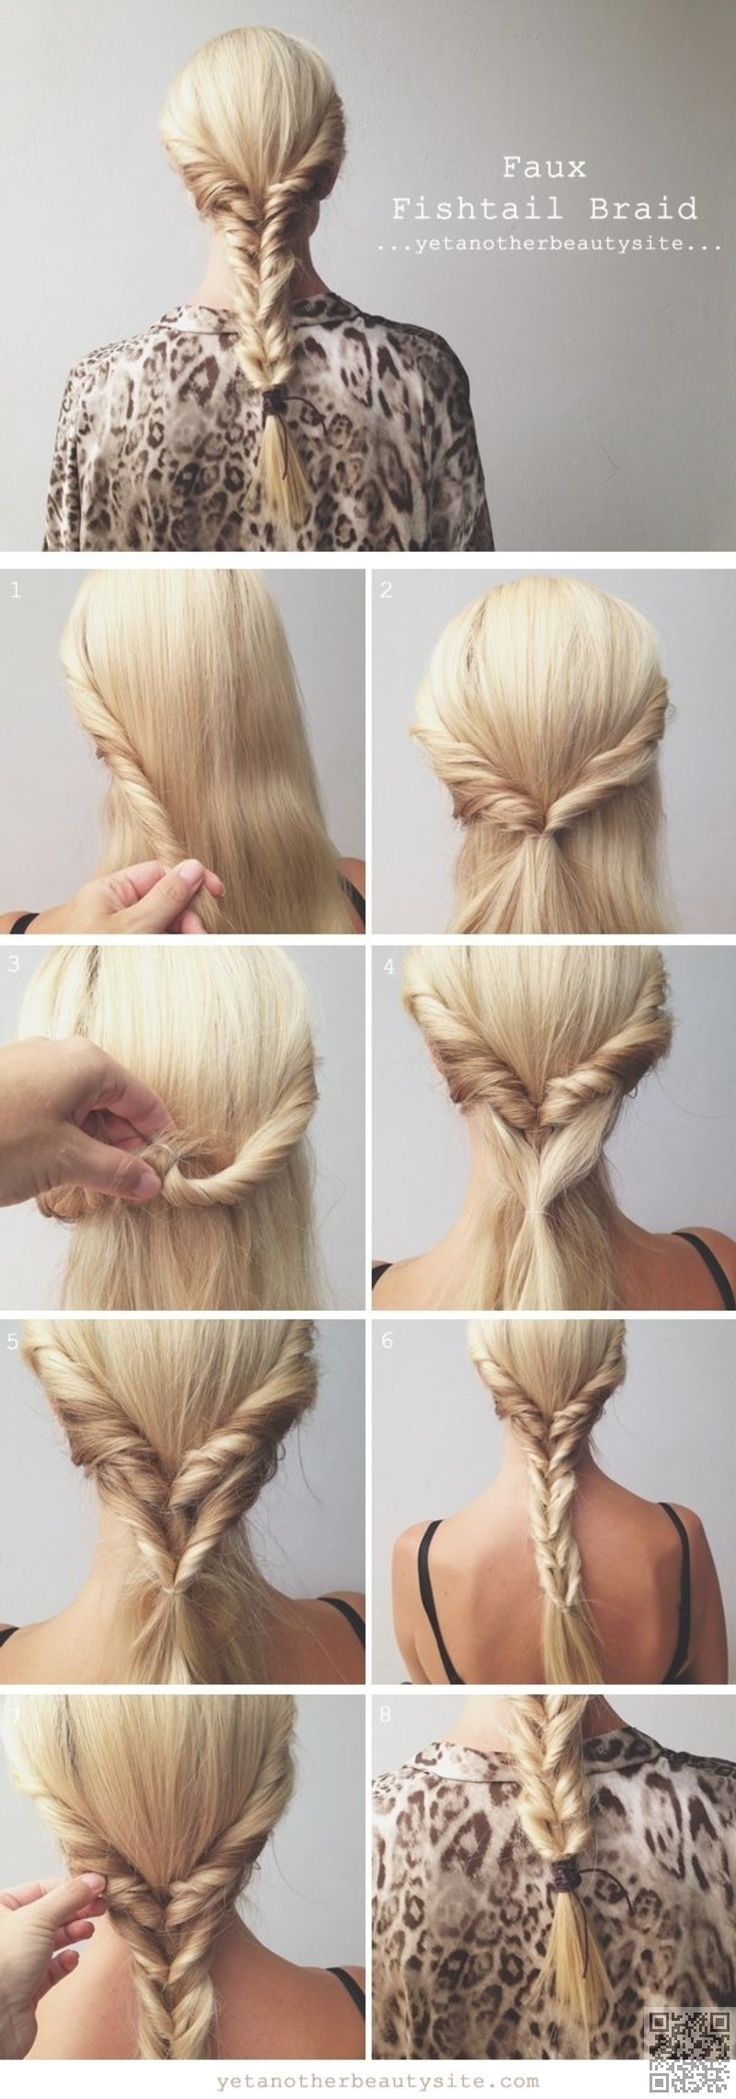 12. Fake #Fishtail - 17 Gorgeous #Hairstyles for Lazy Girls ... → Hair #Hacks